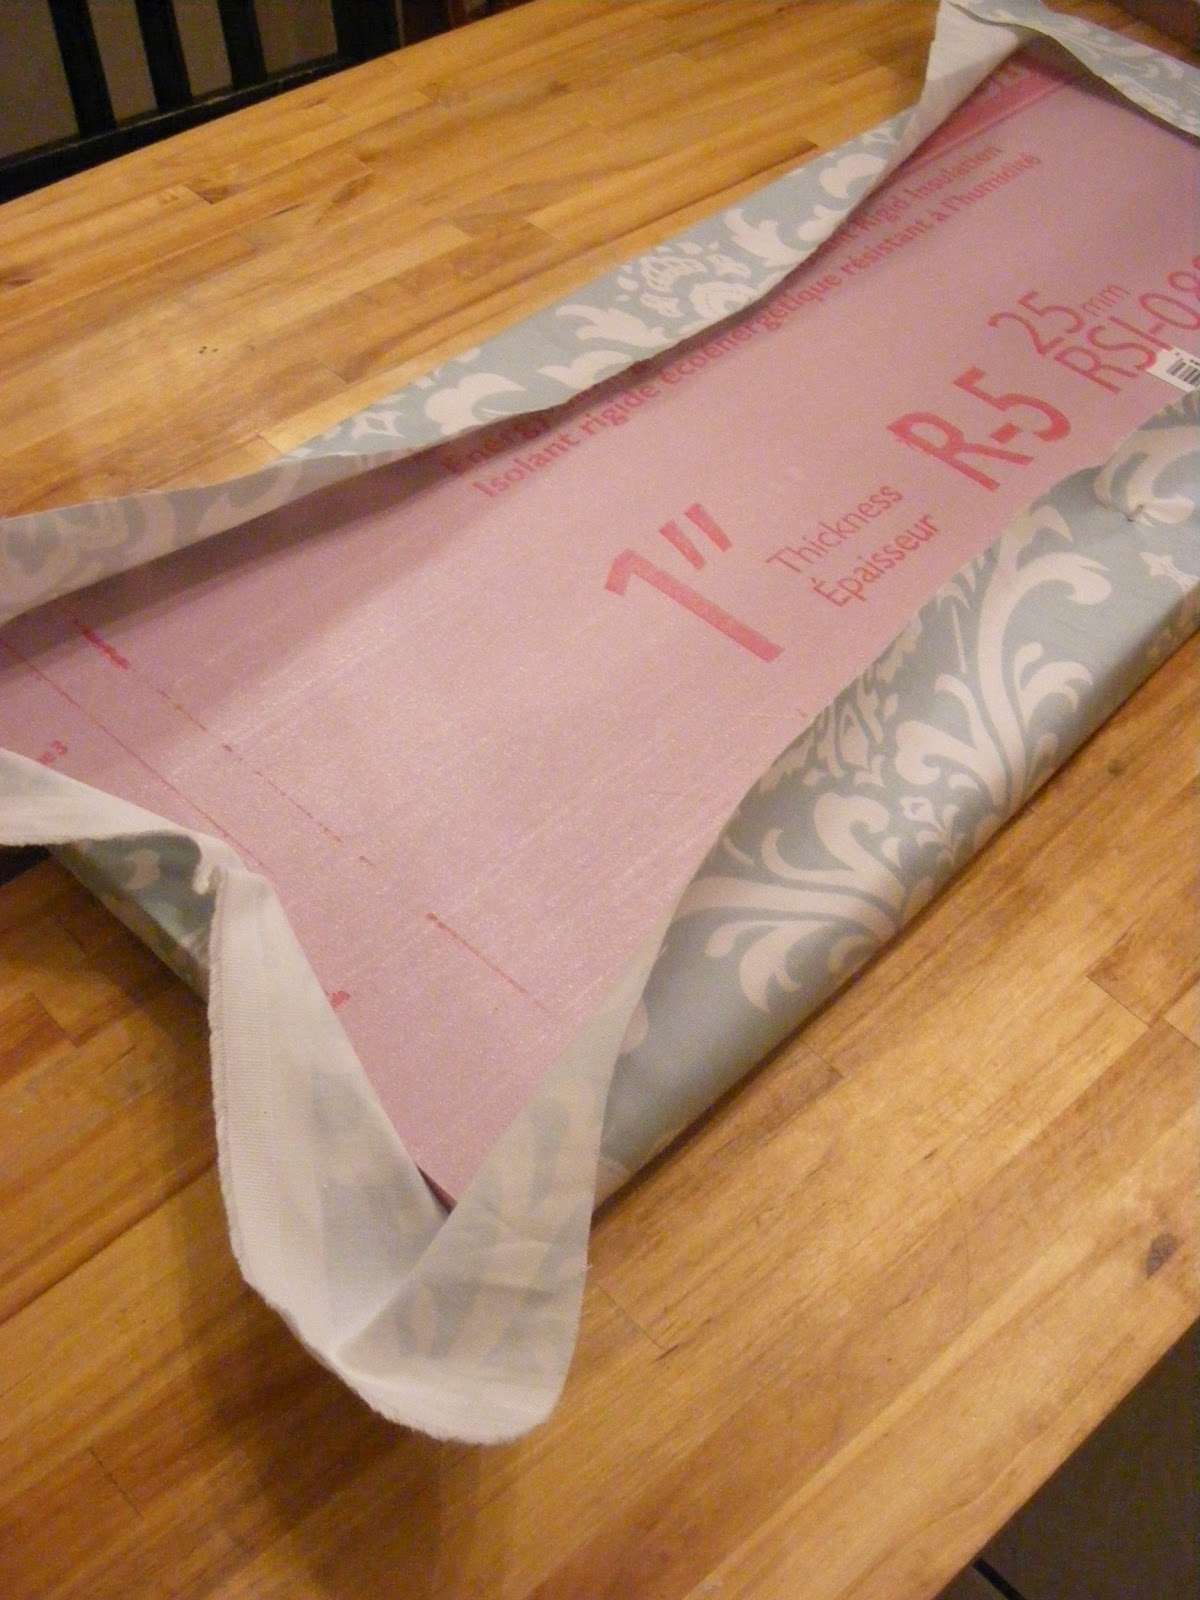 The Complete Guide To Imperfect Homemaking: Simple, Thrifty Diy Art Inside Newest Foam Fabric Wall Art (View 10 of 15)